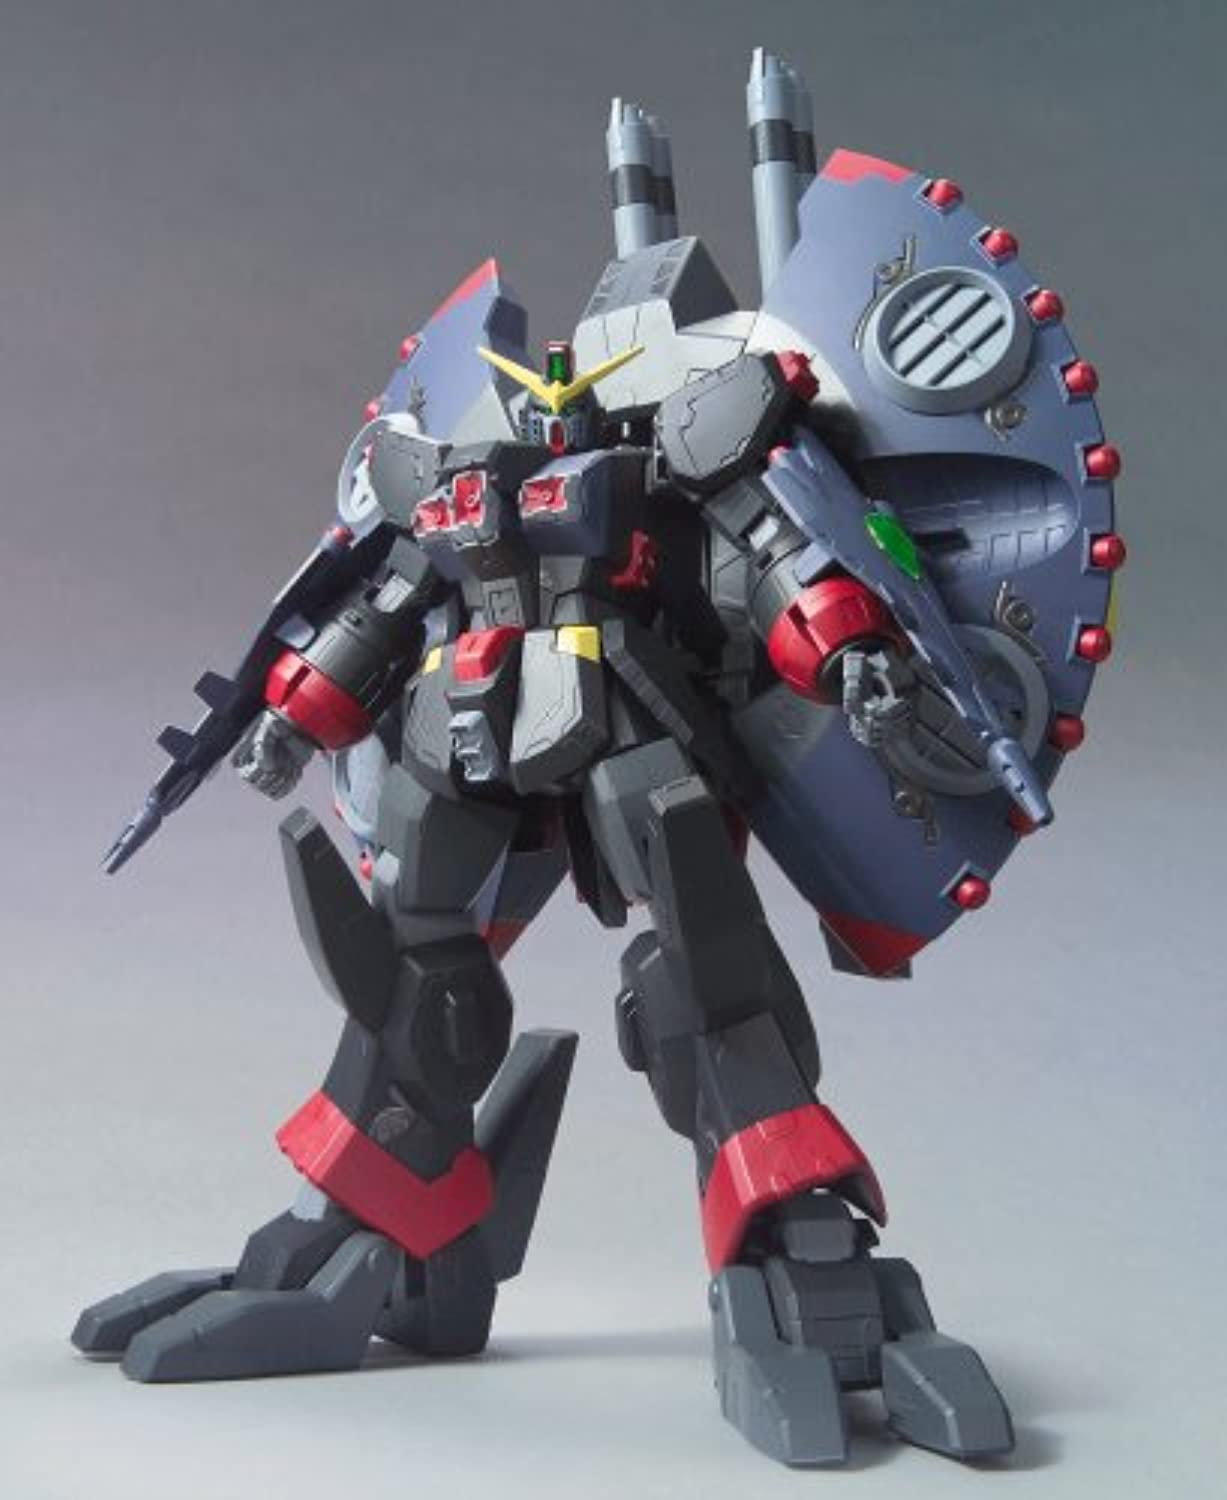 Gundam HCM Pro 40-00 Destroy Gundam 1 200 Scale (japan import)